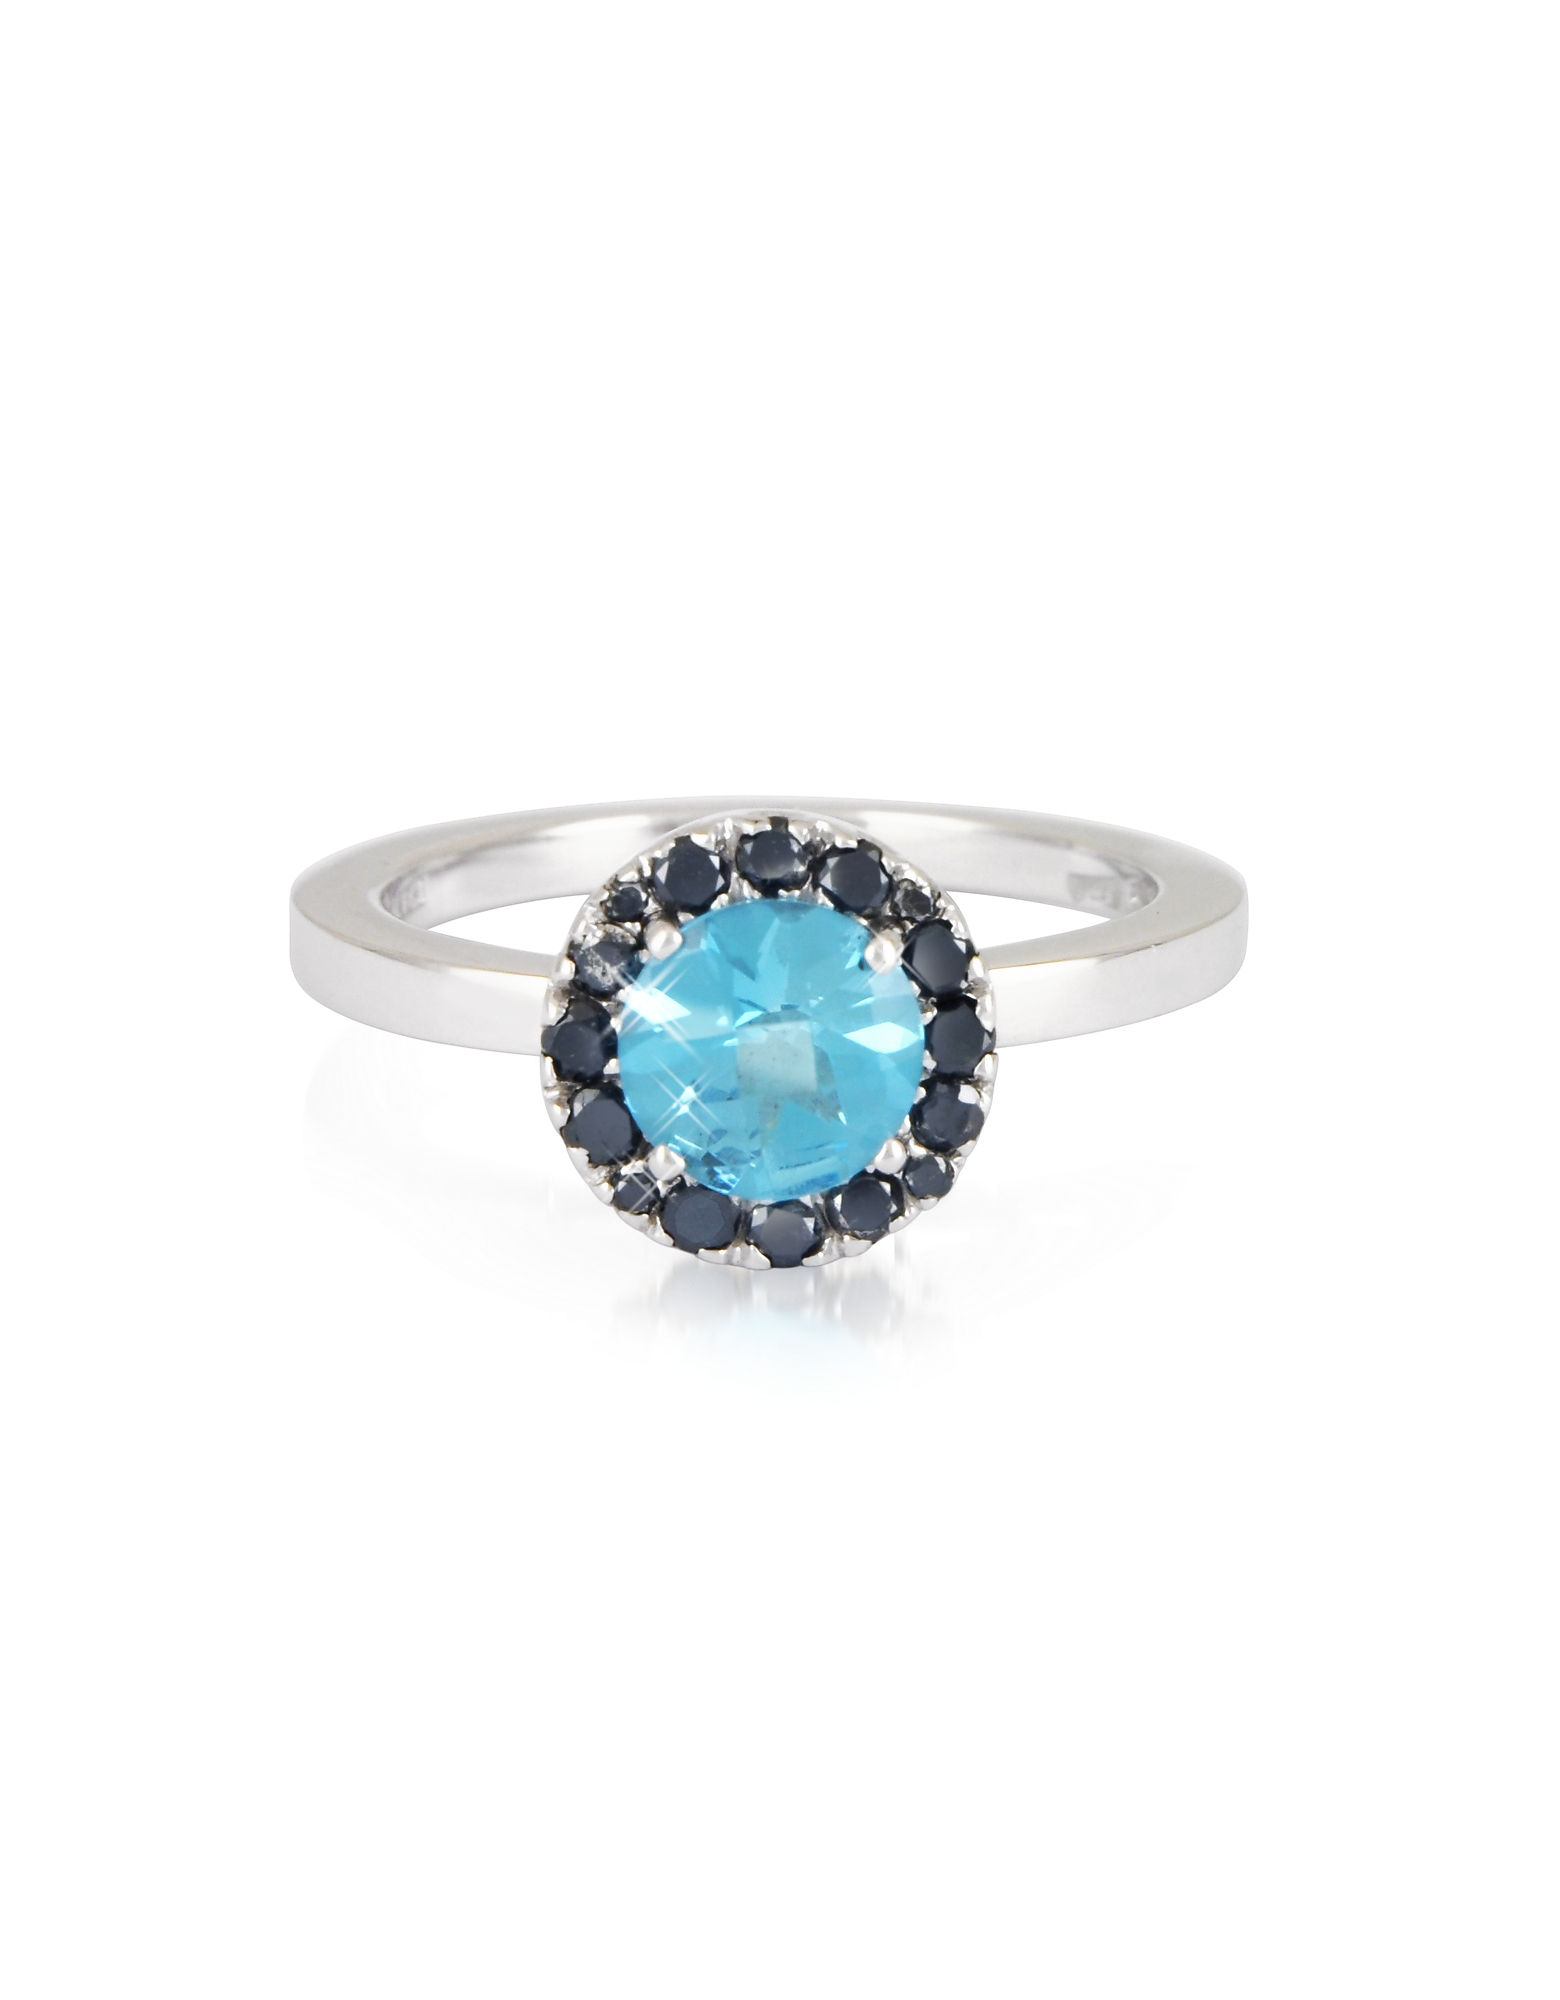 Forzieri Designer Rings, 0.27 ct Diamond Pave 18K White Gold Ring w/Blue Topaz